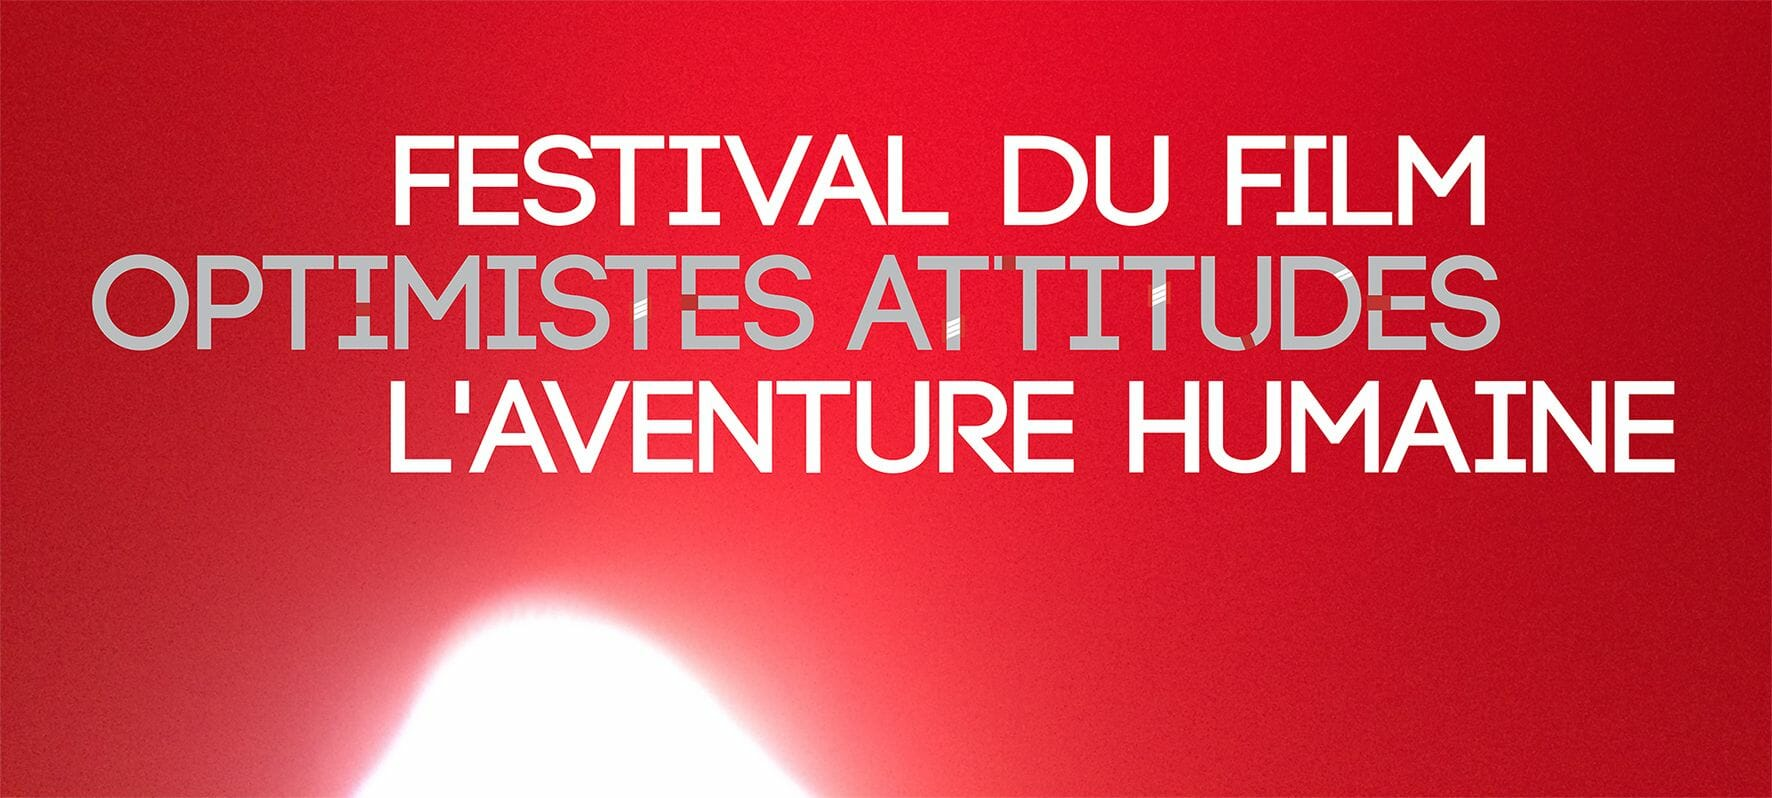 Festival du film optimistes attitudes l'aventure humaine-optimistfilm